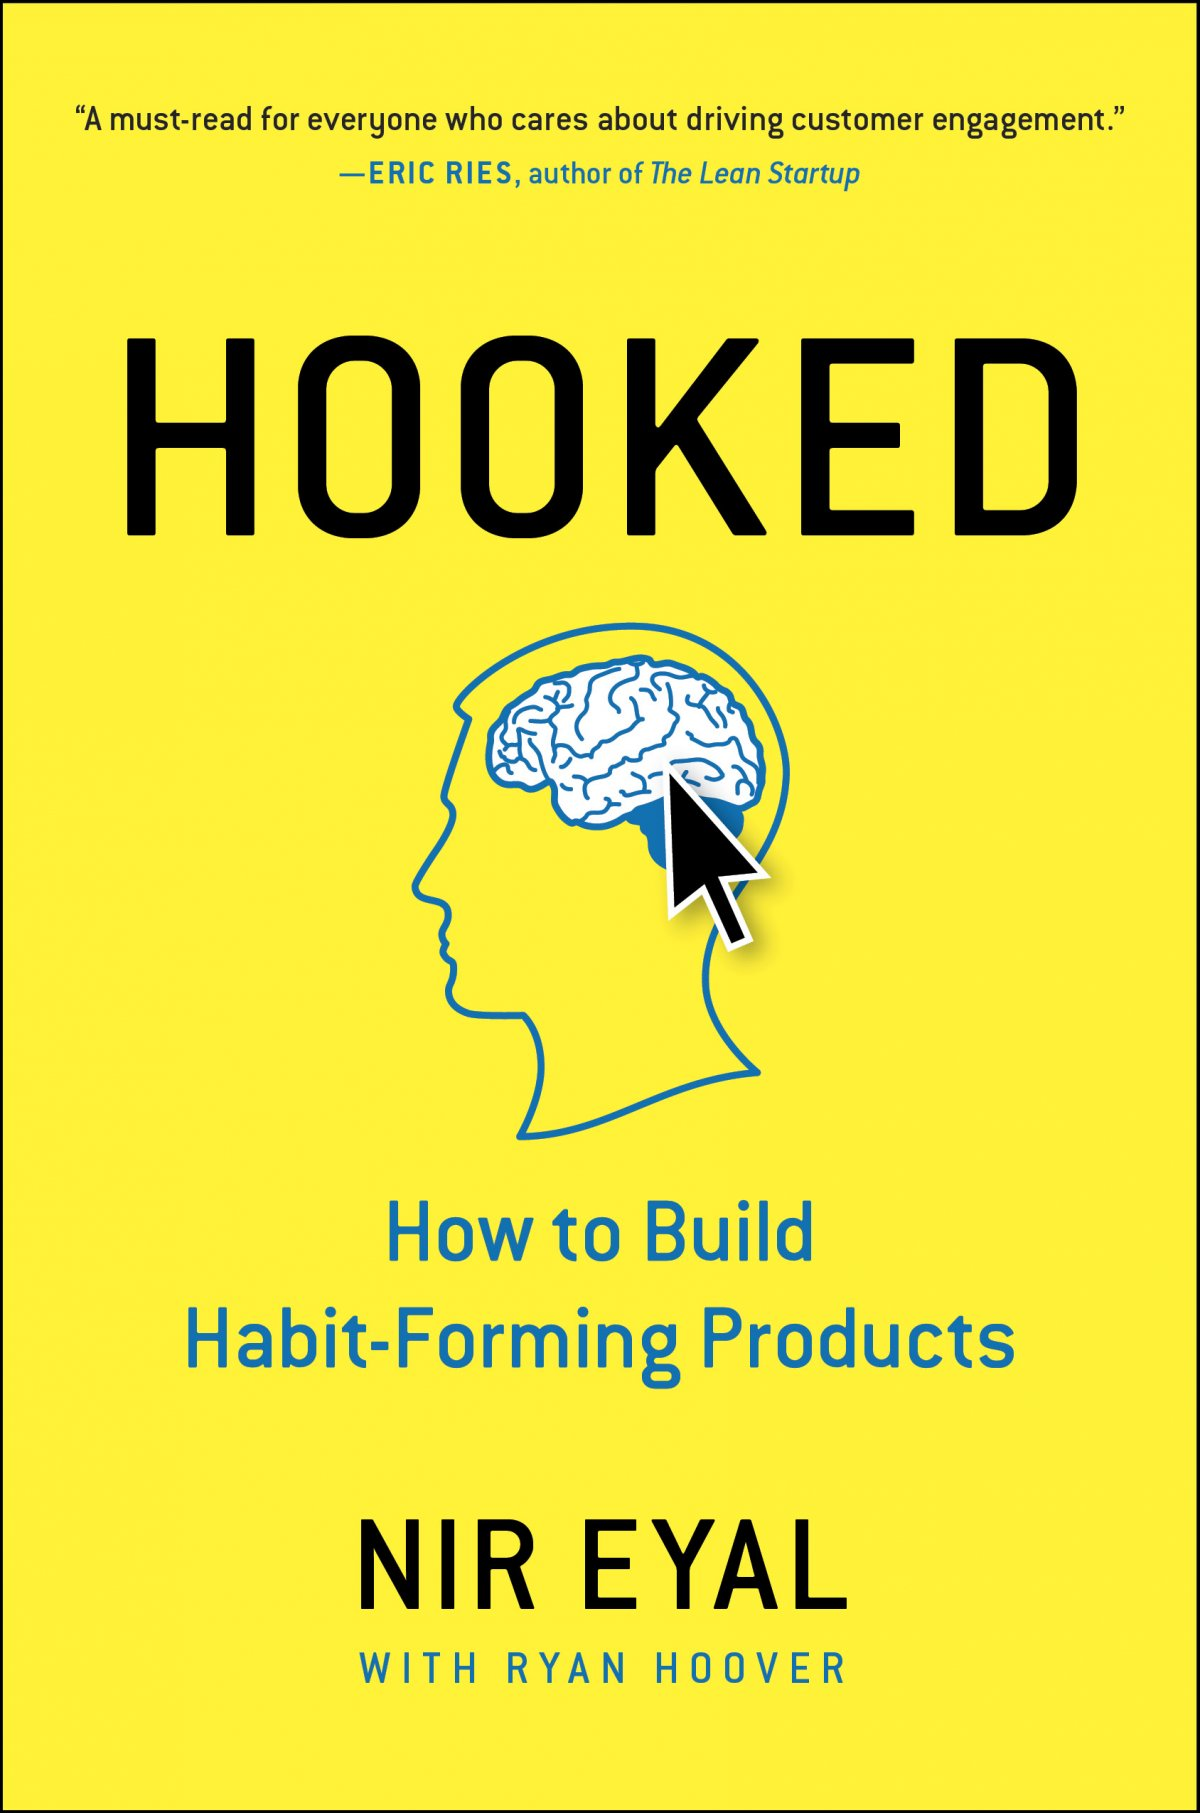 hooked_frontcover_8-6